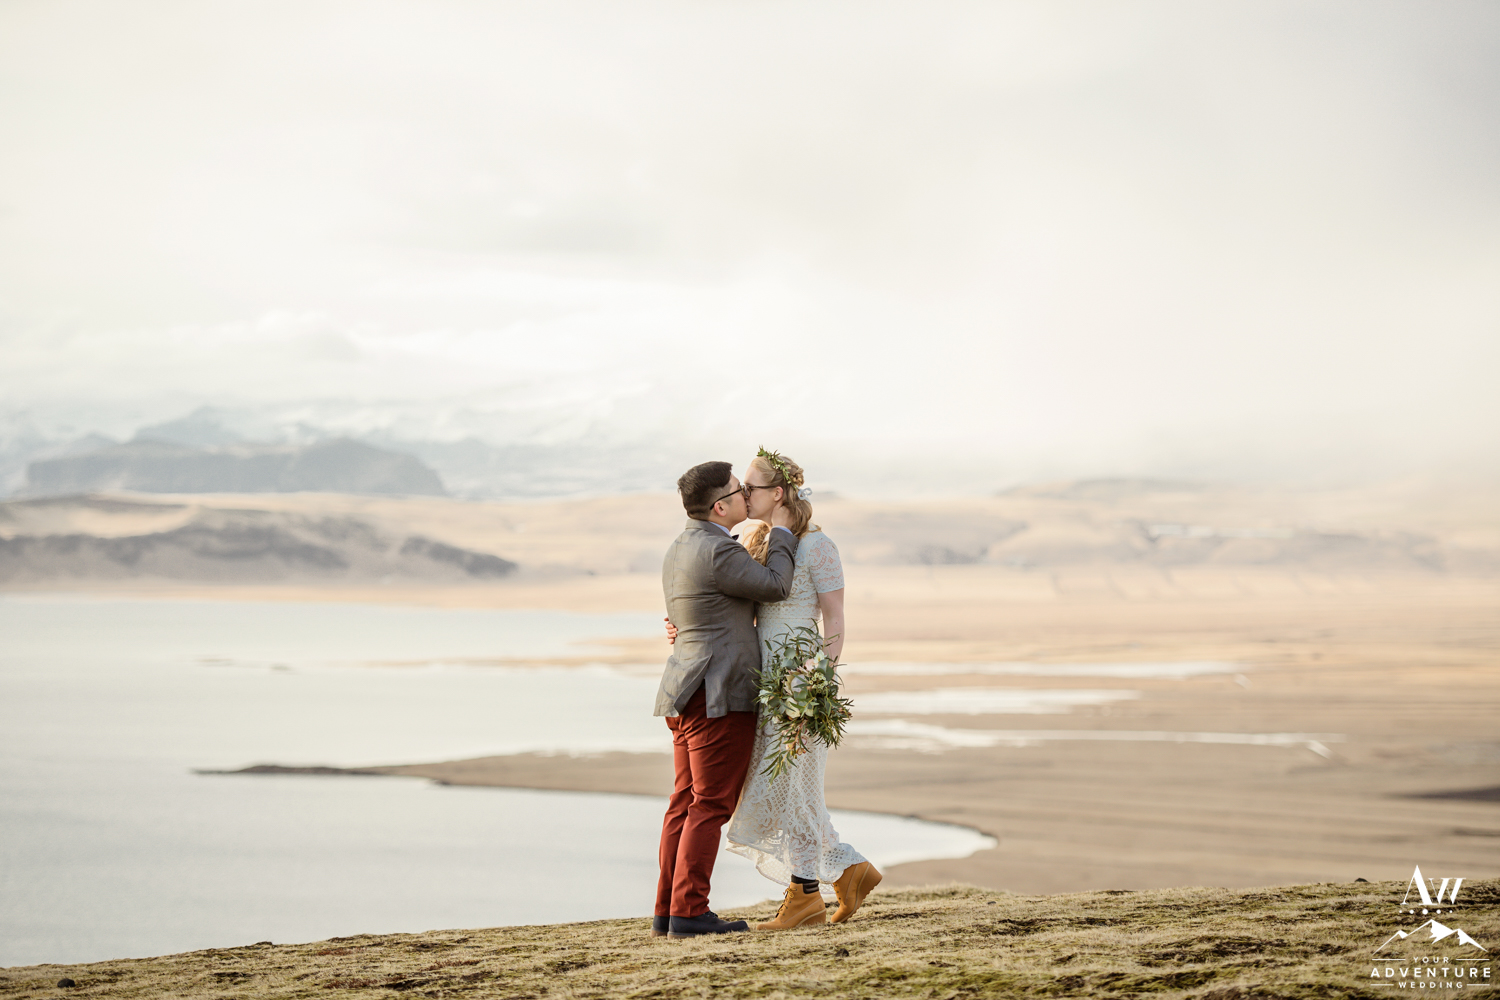 Couple kissing on their Iceland wedding day on a mountain